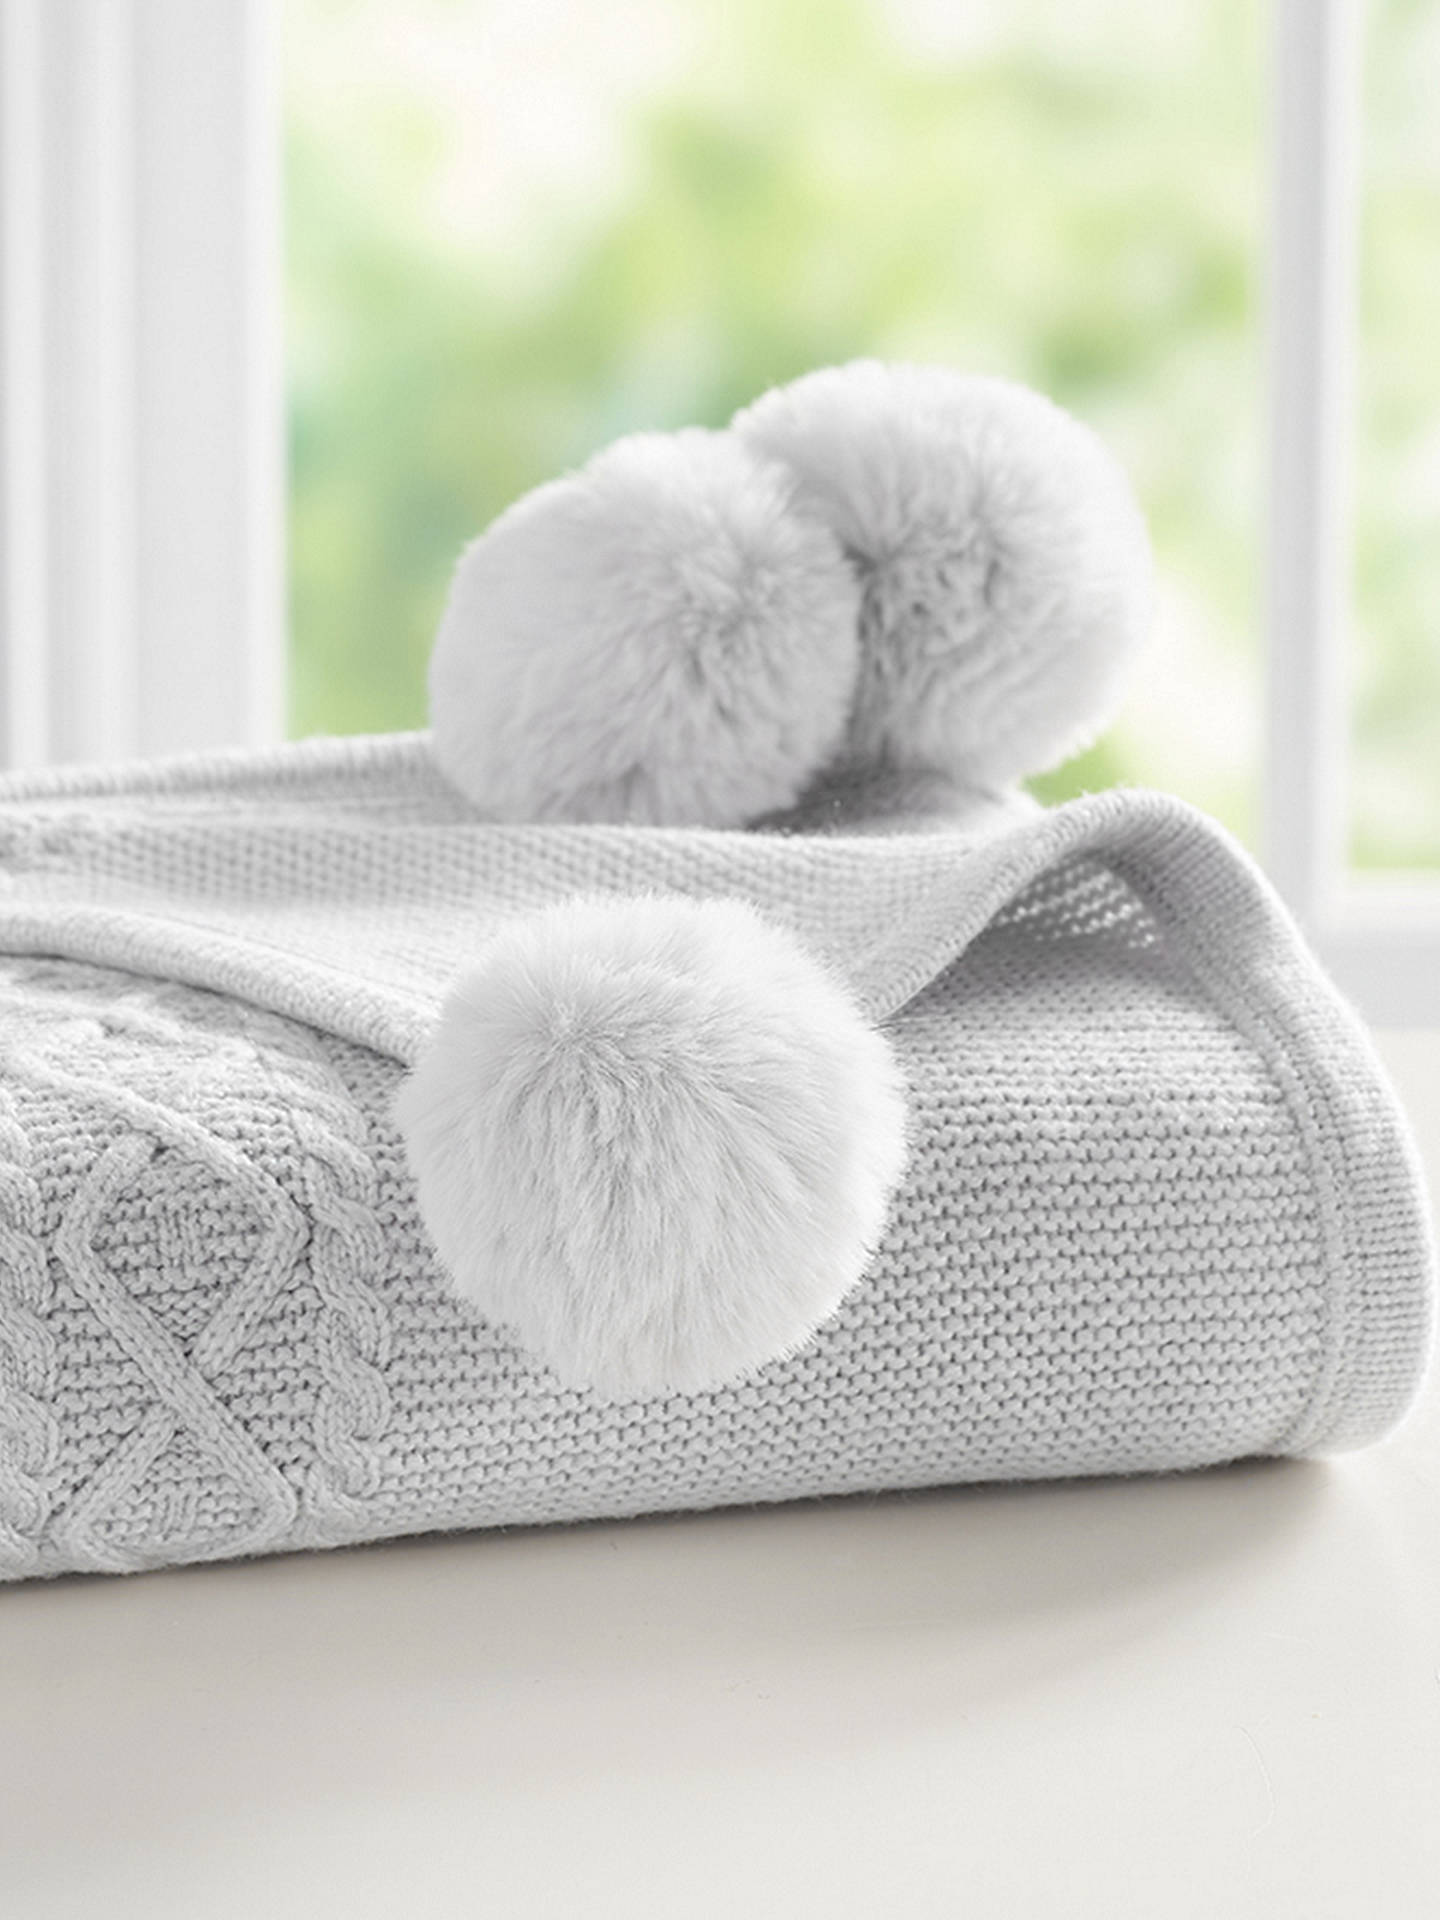 Pottery Barn Kids Cable Knit Pom Pom Baby Blanket Grey At